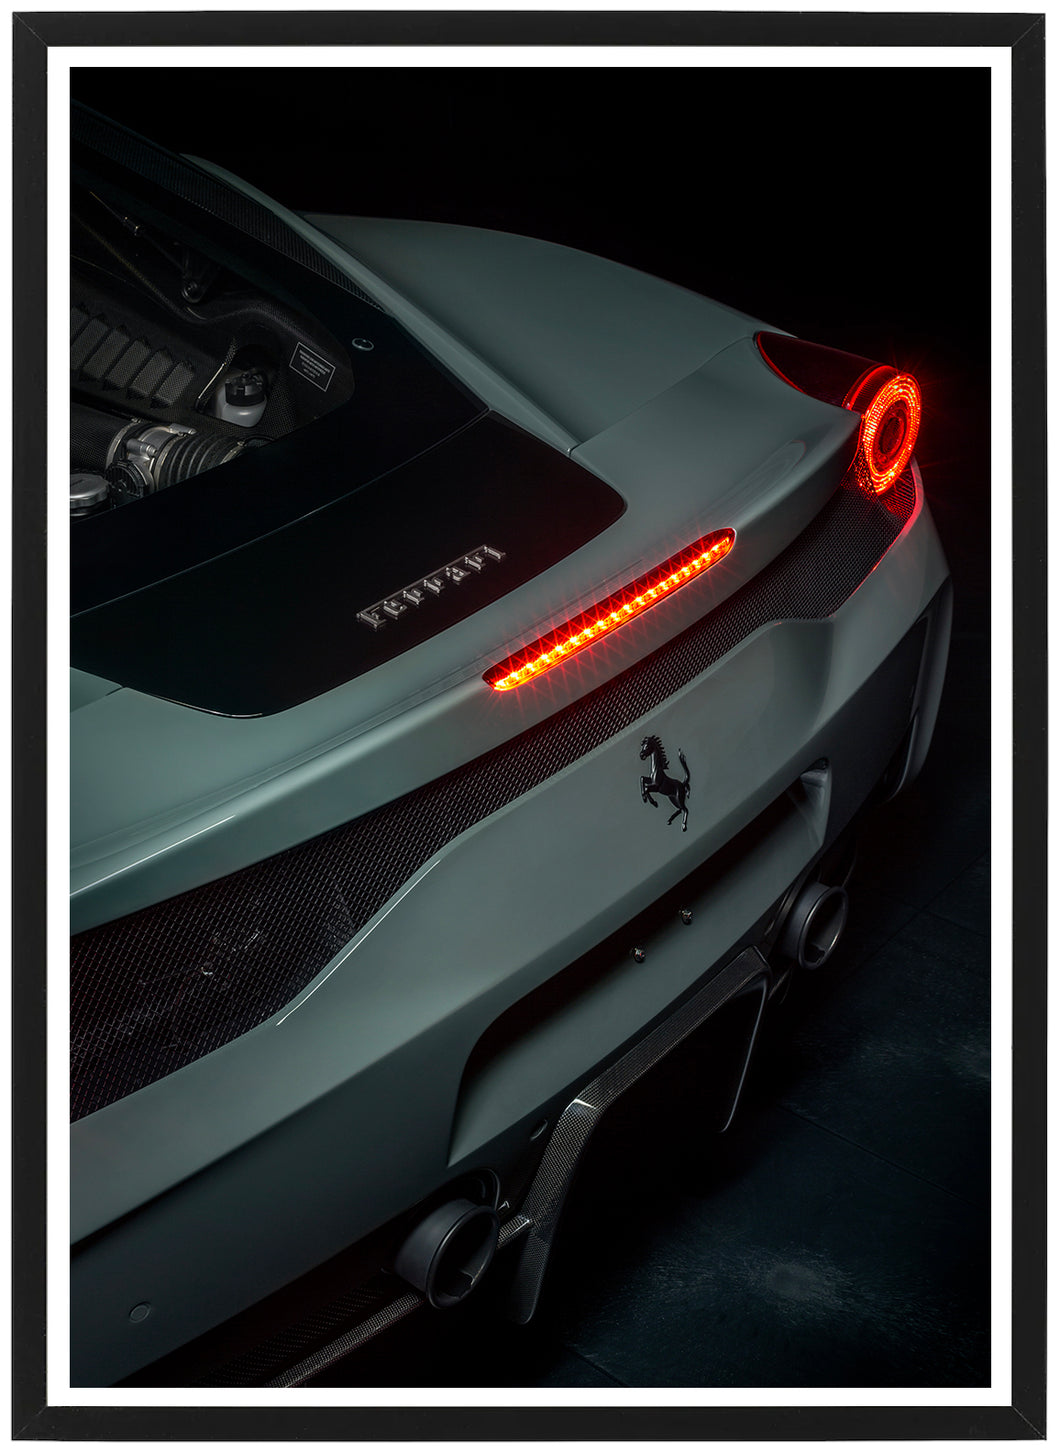 Ferrari 458 Speciale rear poster th